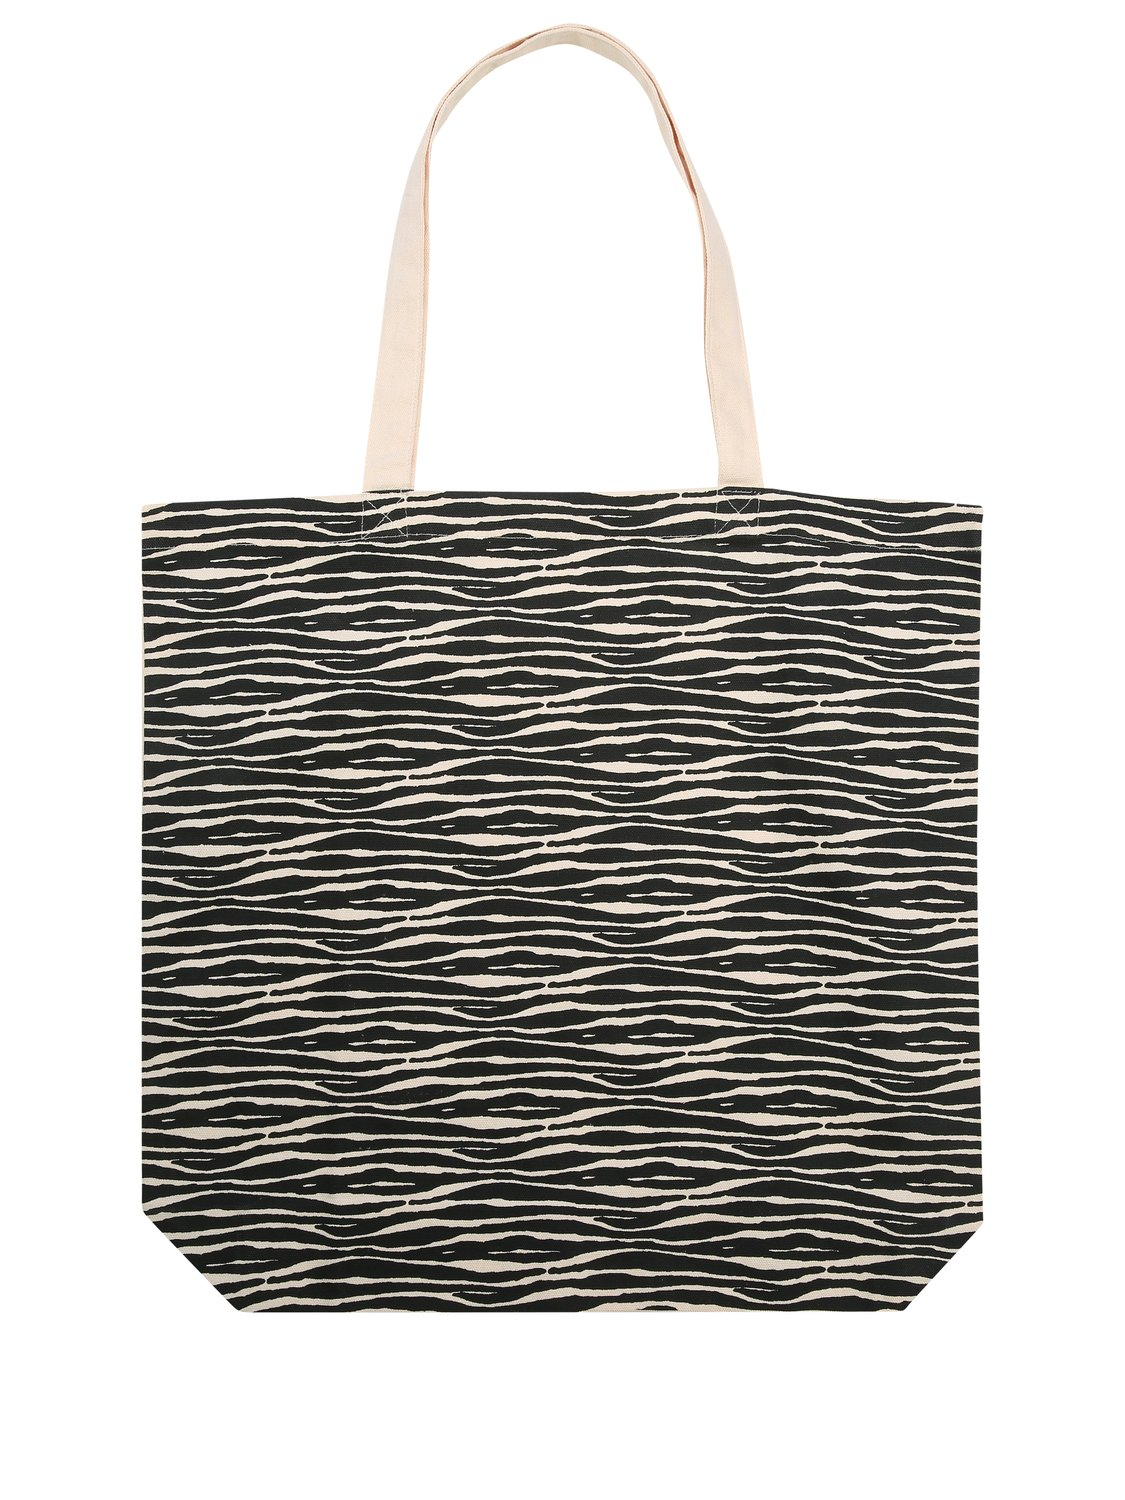 Canvas shopping bag with zebra print bag for life 100% cotton - Natural